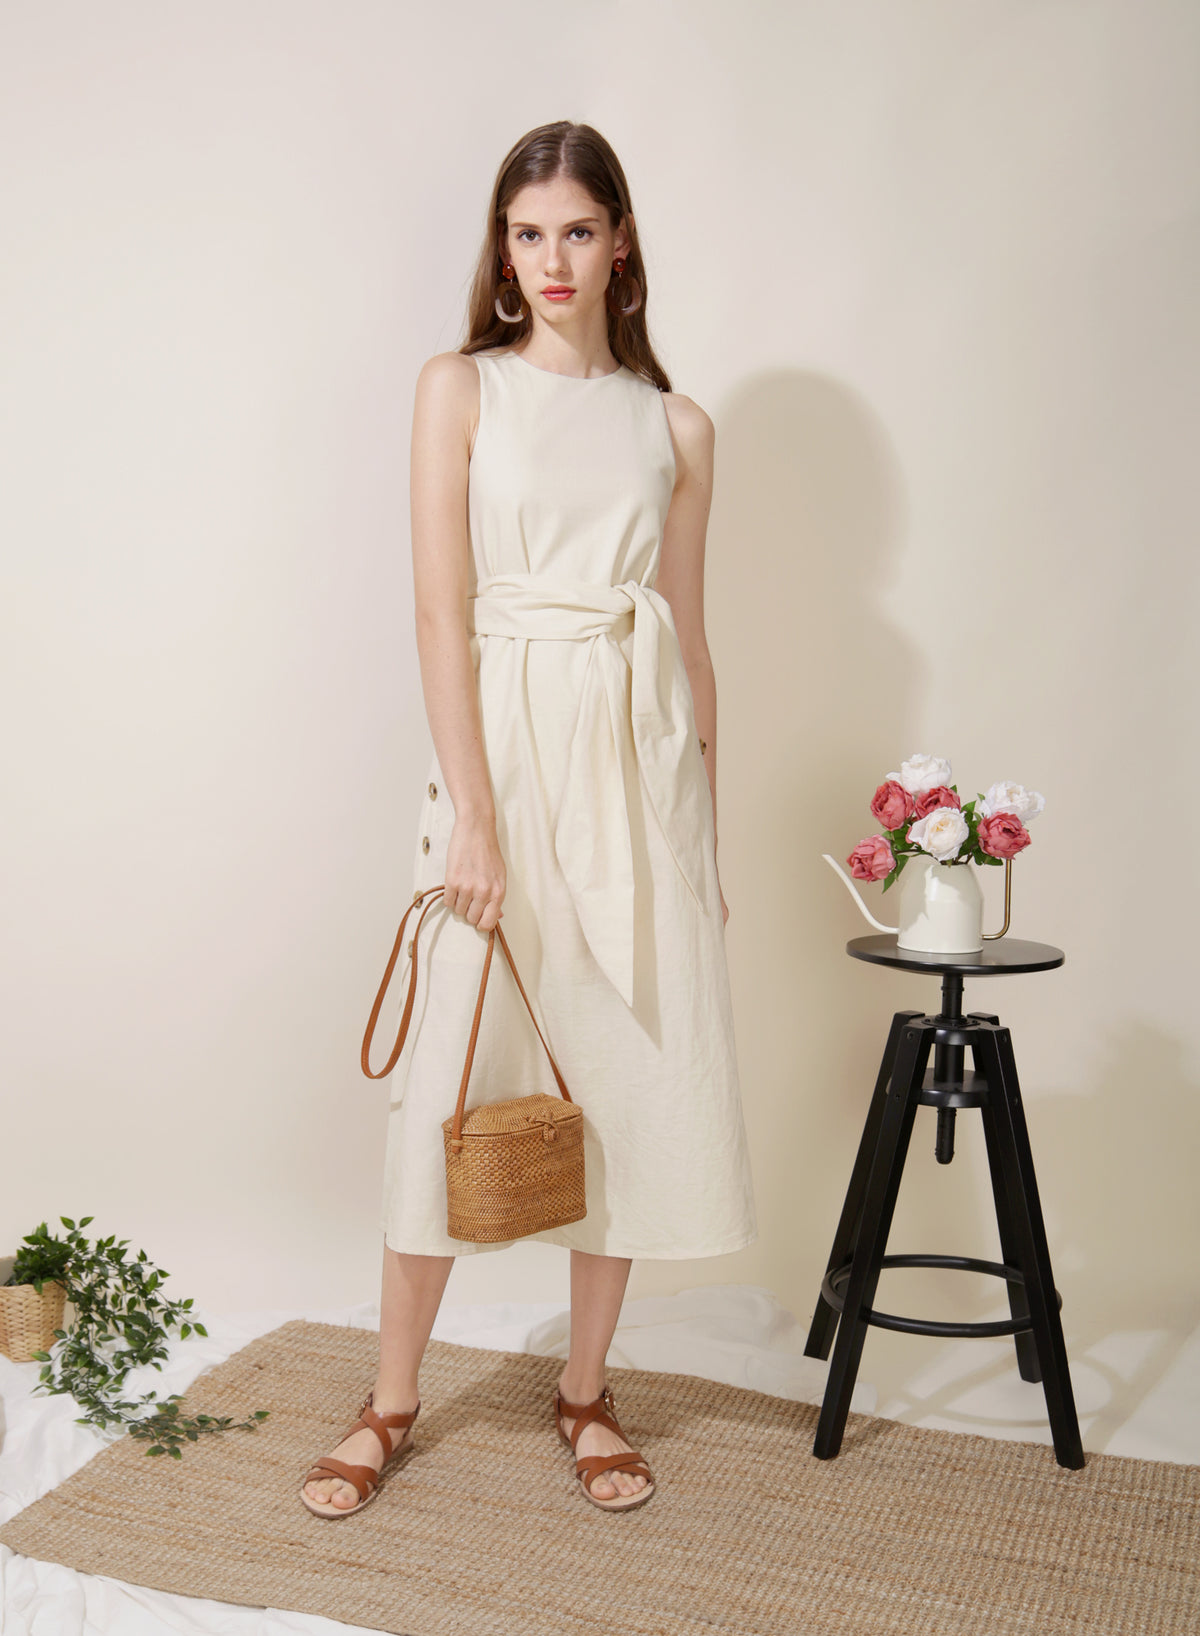 Philosophy Button Sides Midi Dress (Cremé) at $ 45.00 only sold at And Well Dressed Online Fashion Store Singapore